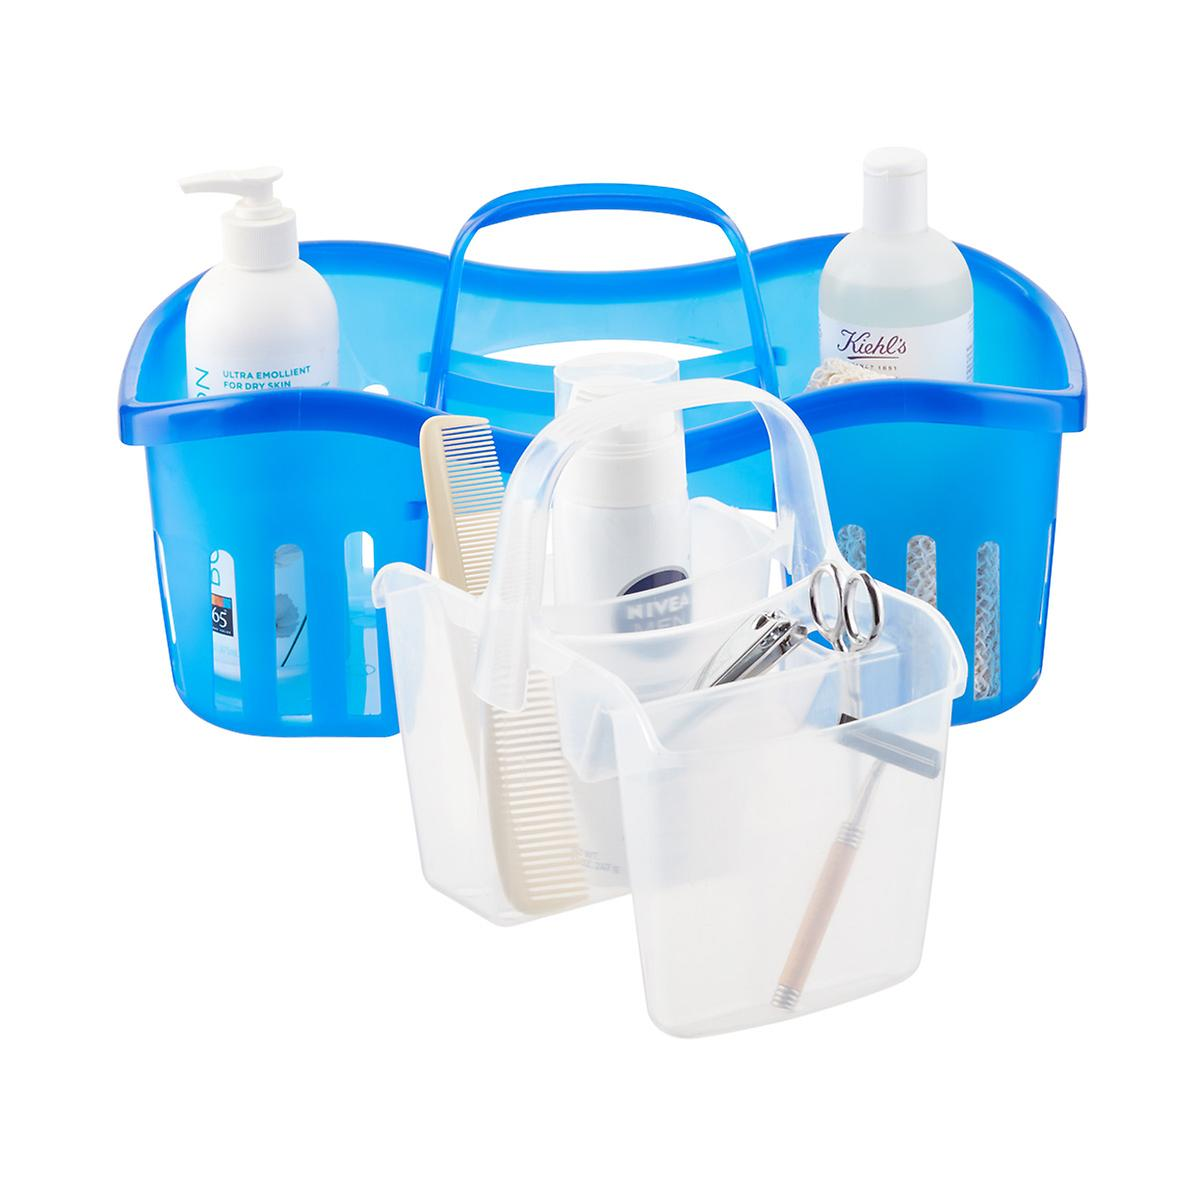 Casabella Blue 2-in-1 Shower Caddy | The Container Store